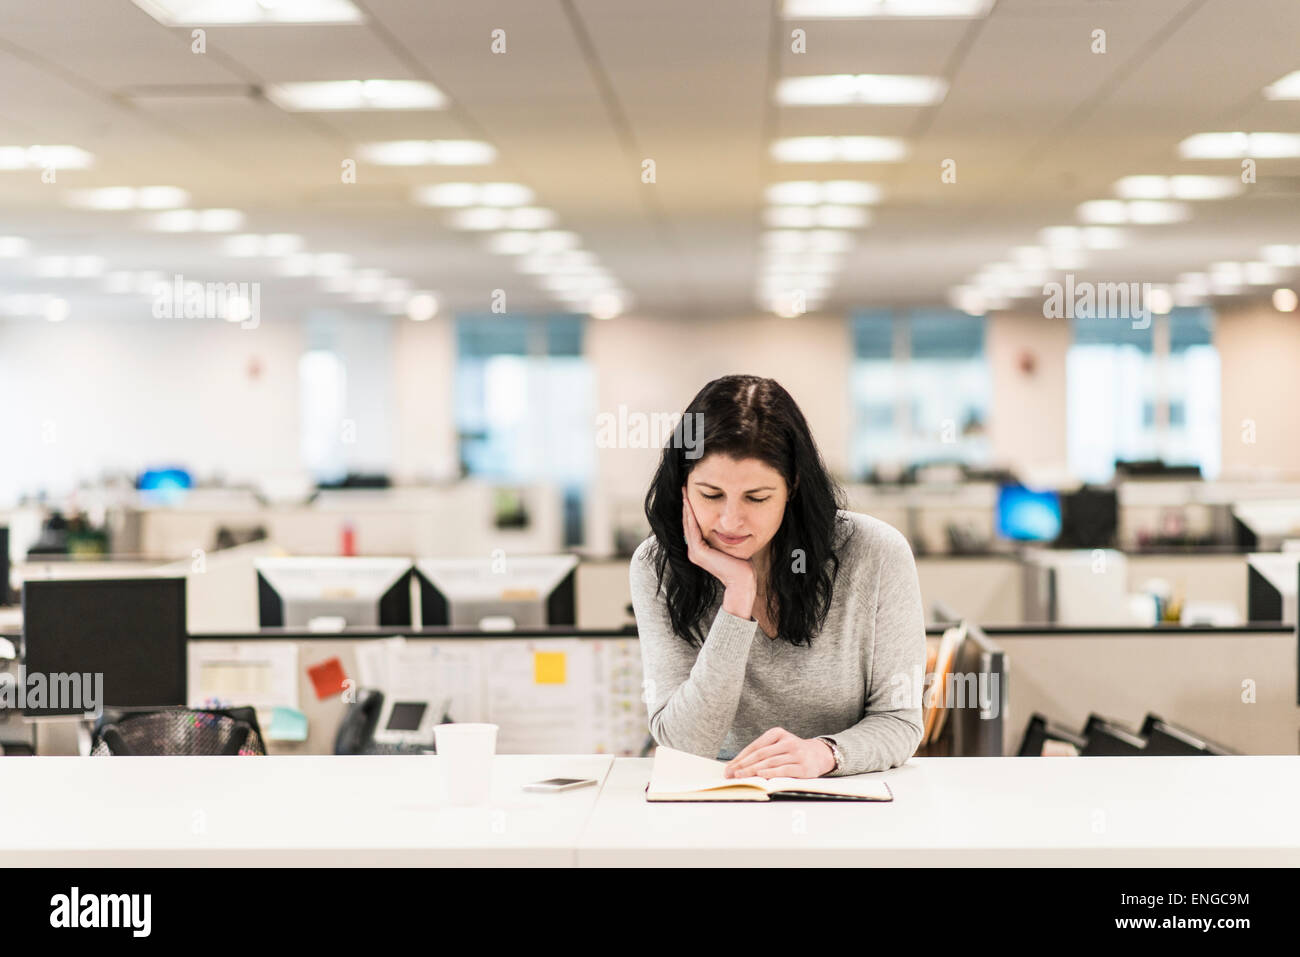 A woman seated with her hand resting on her chin, reading a book at a desk. - Stock Image